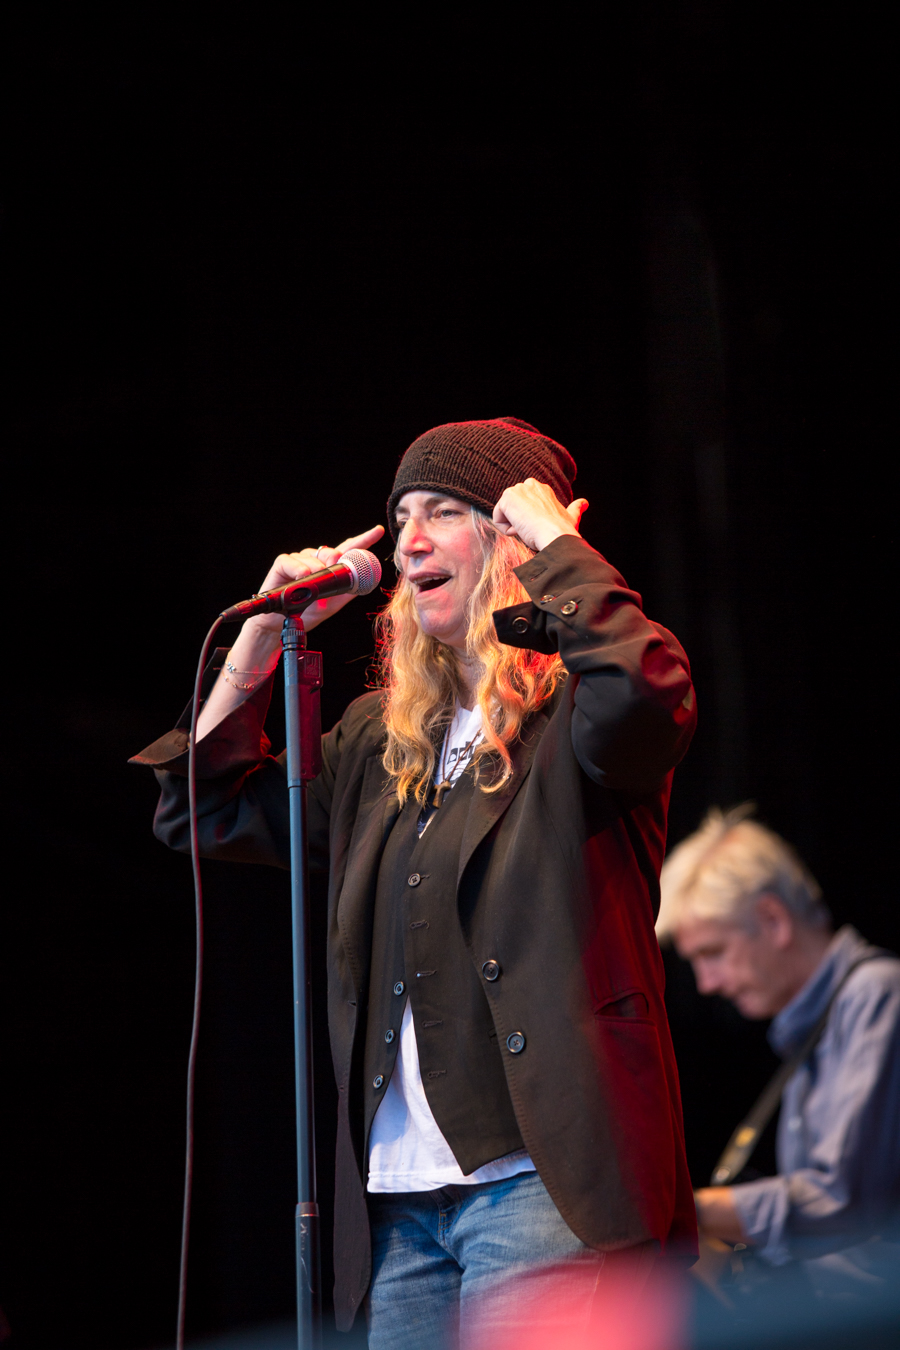 140730-Patti-Smith-Foto-Rebecca-Carlgren-livefoto-nu-photo--3